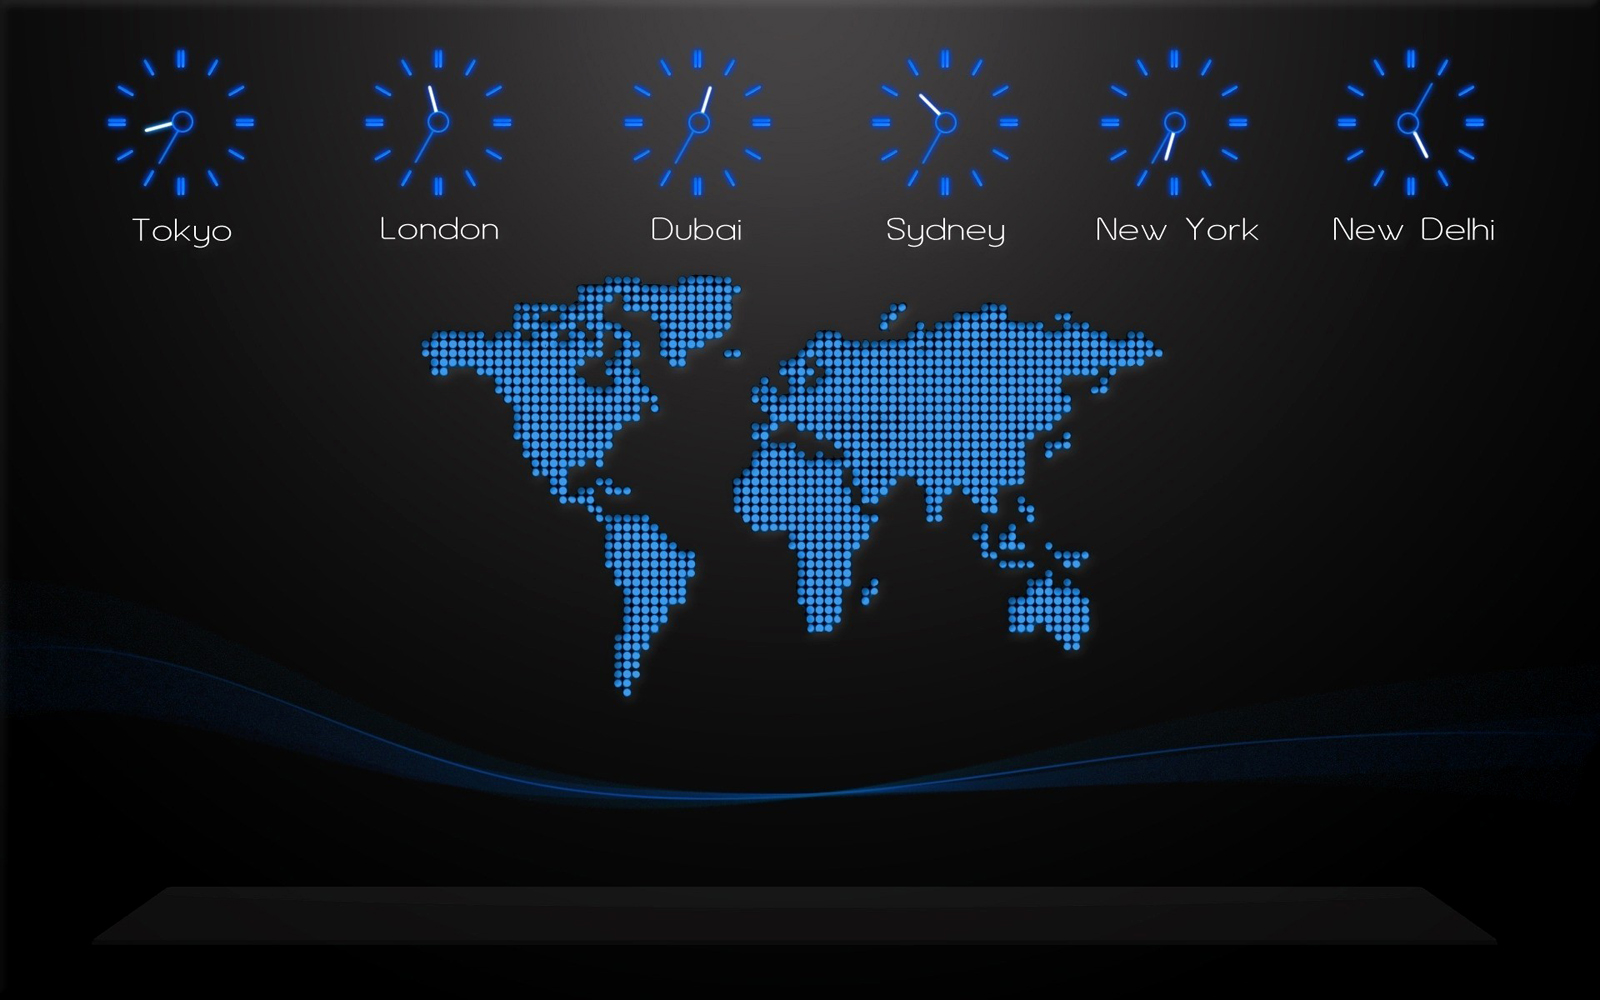 World map wallpaper desktop wallpapersafari world map on your desktop creative designs desktop wallpaper download 1600x1000 gumiabroncs Images